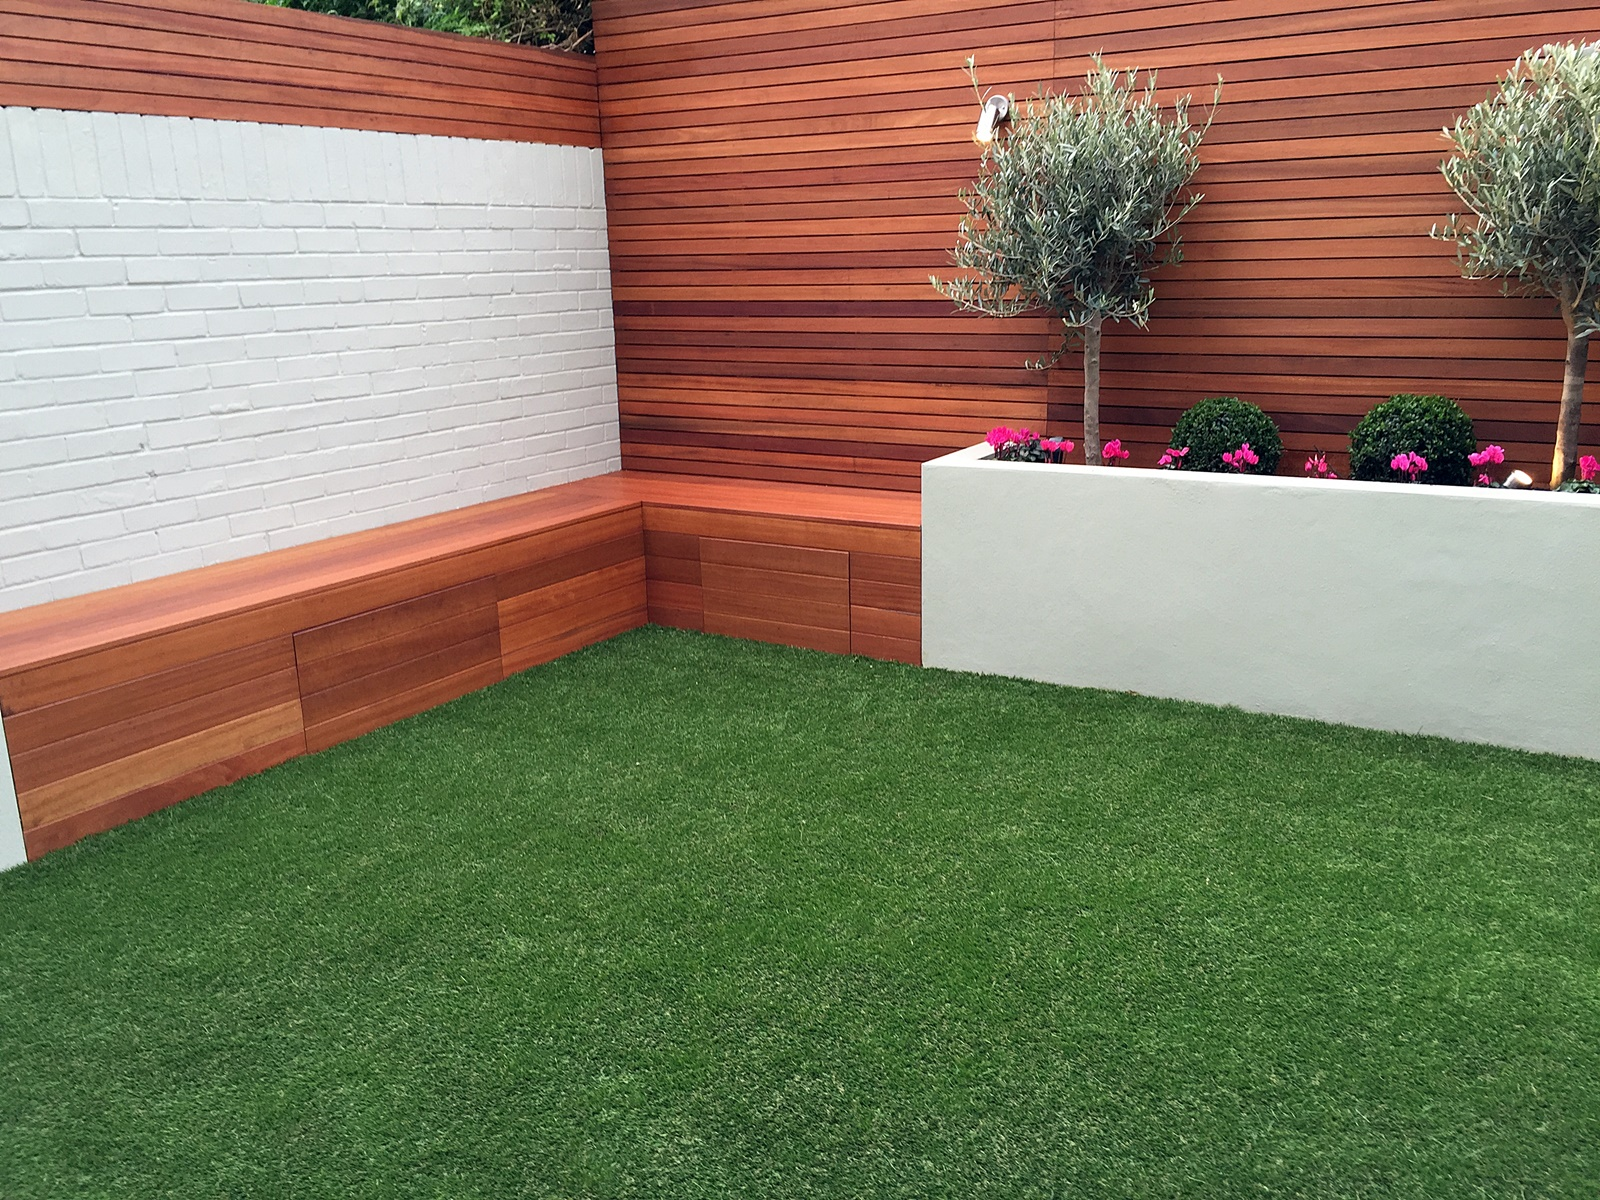 Simple modern court yard garden designer battersea fulham for Simple small garden